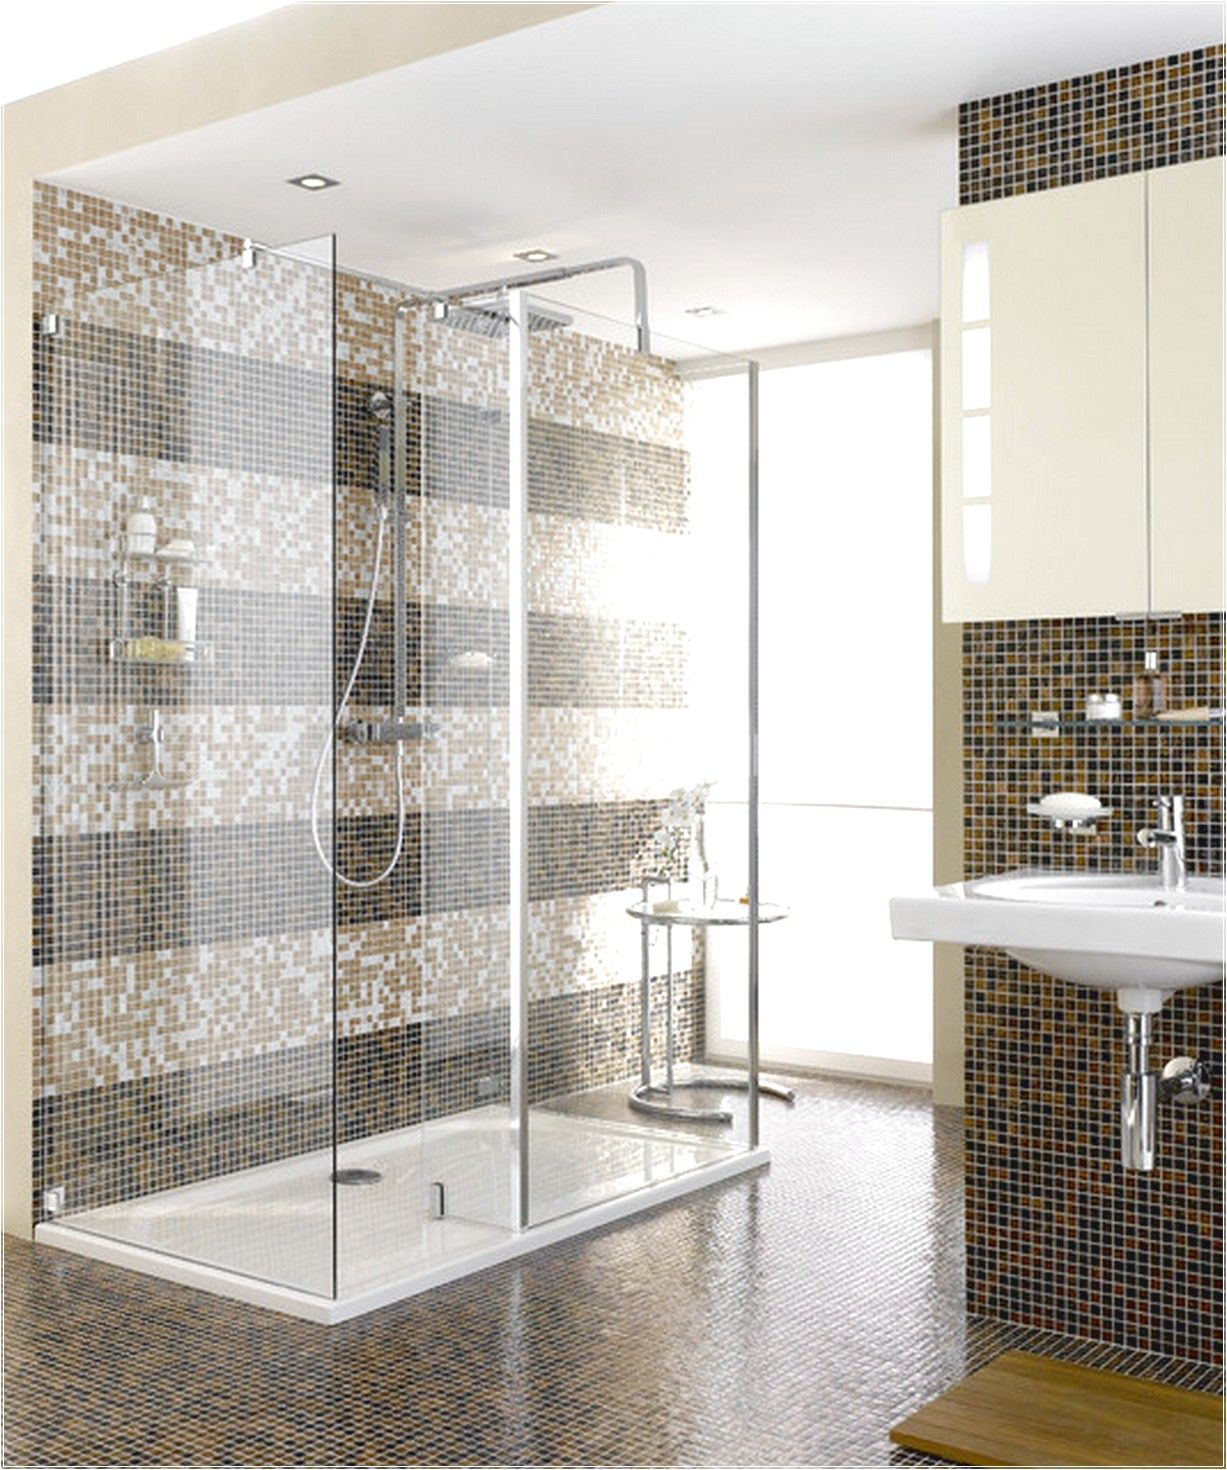 Bathrooms Design Wonderful Modern Shower Tile Brown Theme Difference Bathroom And Clic Showers Advice For Stall Designs Room Ideas Gl